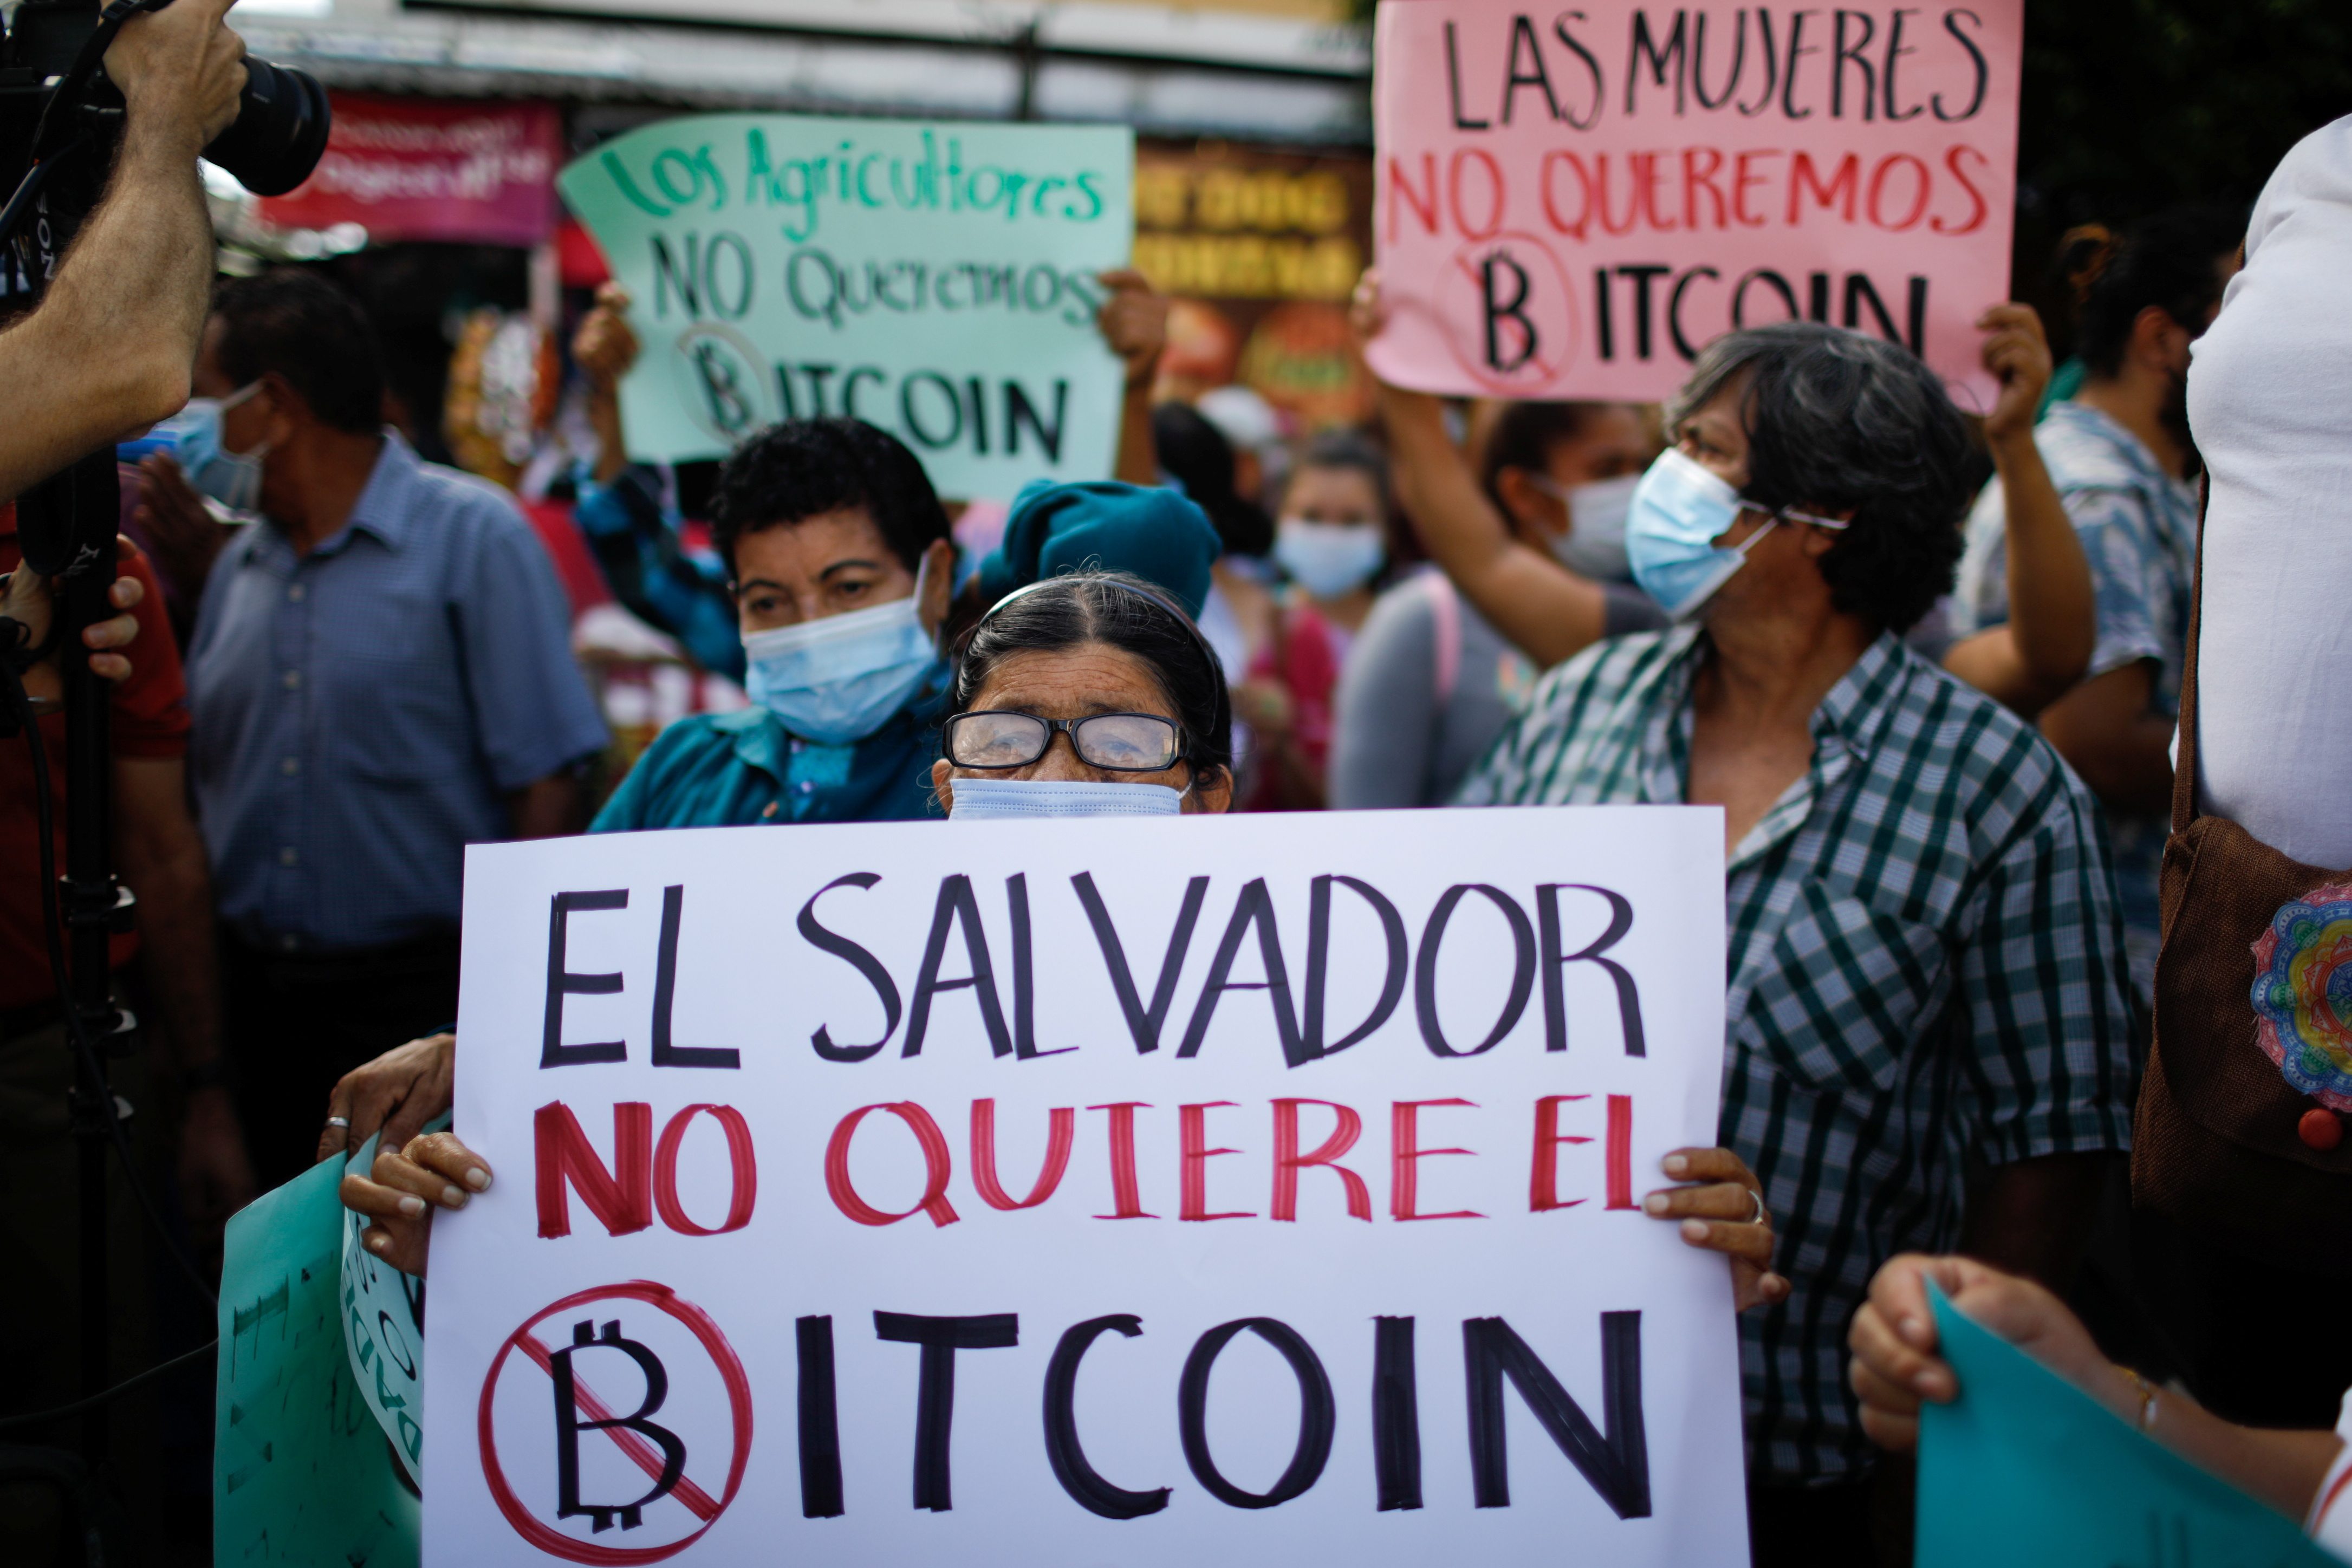 A person holds a sign that reads 'El Salvador doesn't want Bitcoin' as people participate in a protest against the use of Bitcoin as legal tender, in San Salvador, El Salvador, September 7, 2021. REUTERS/Jose Cabezas